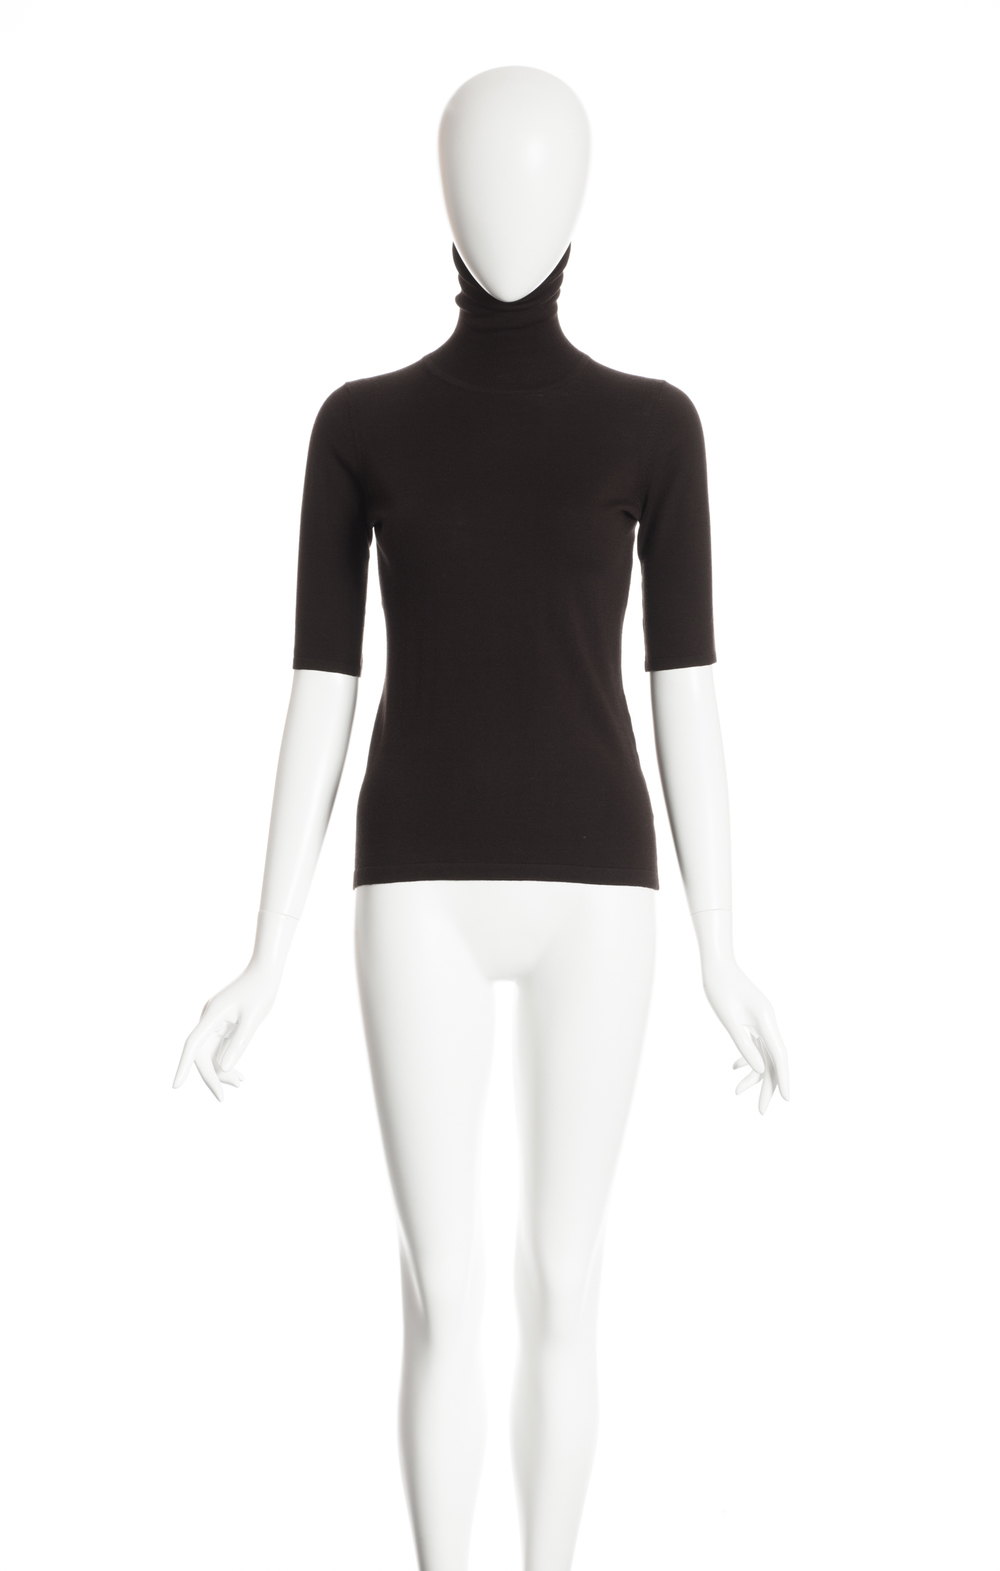 LUCINDA - Pull col roulé manches coude - 240 $